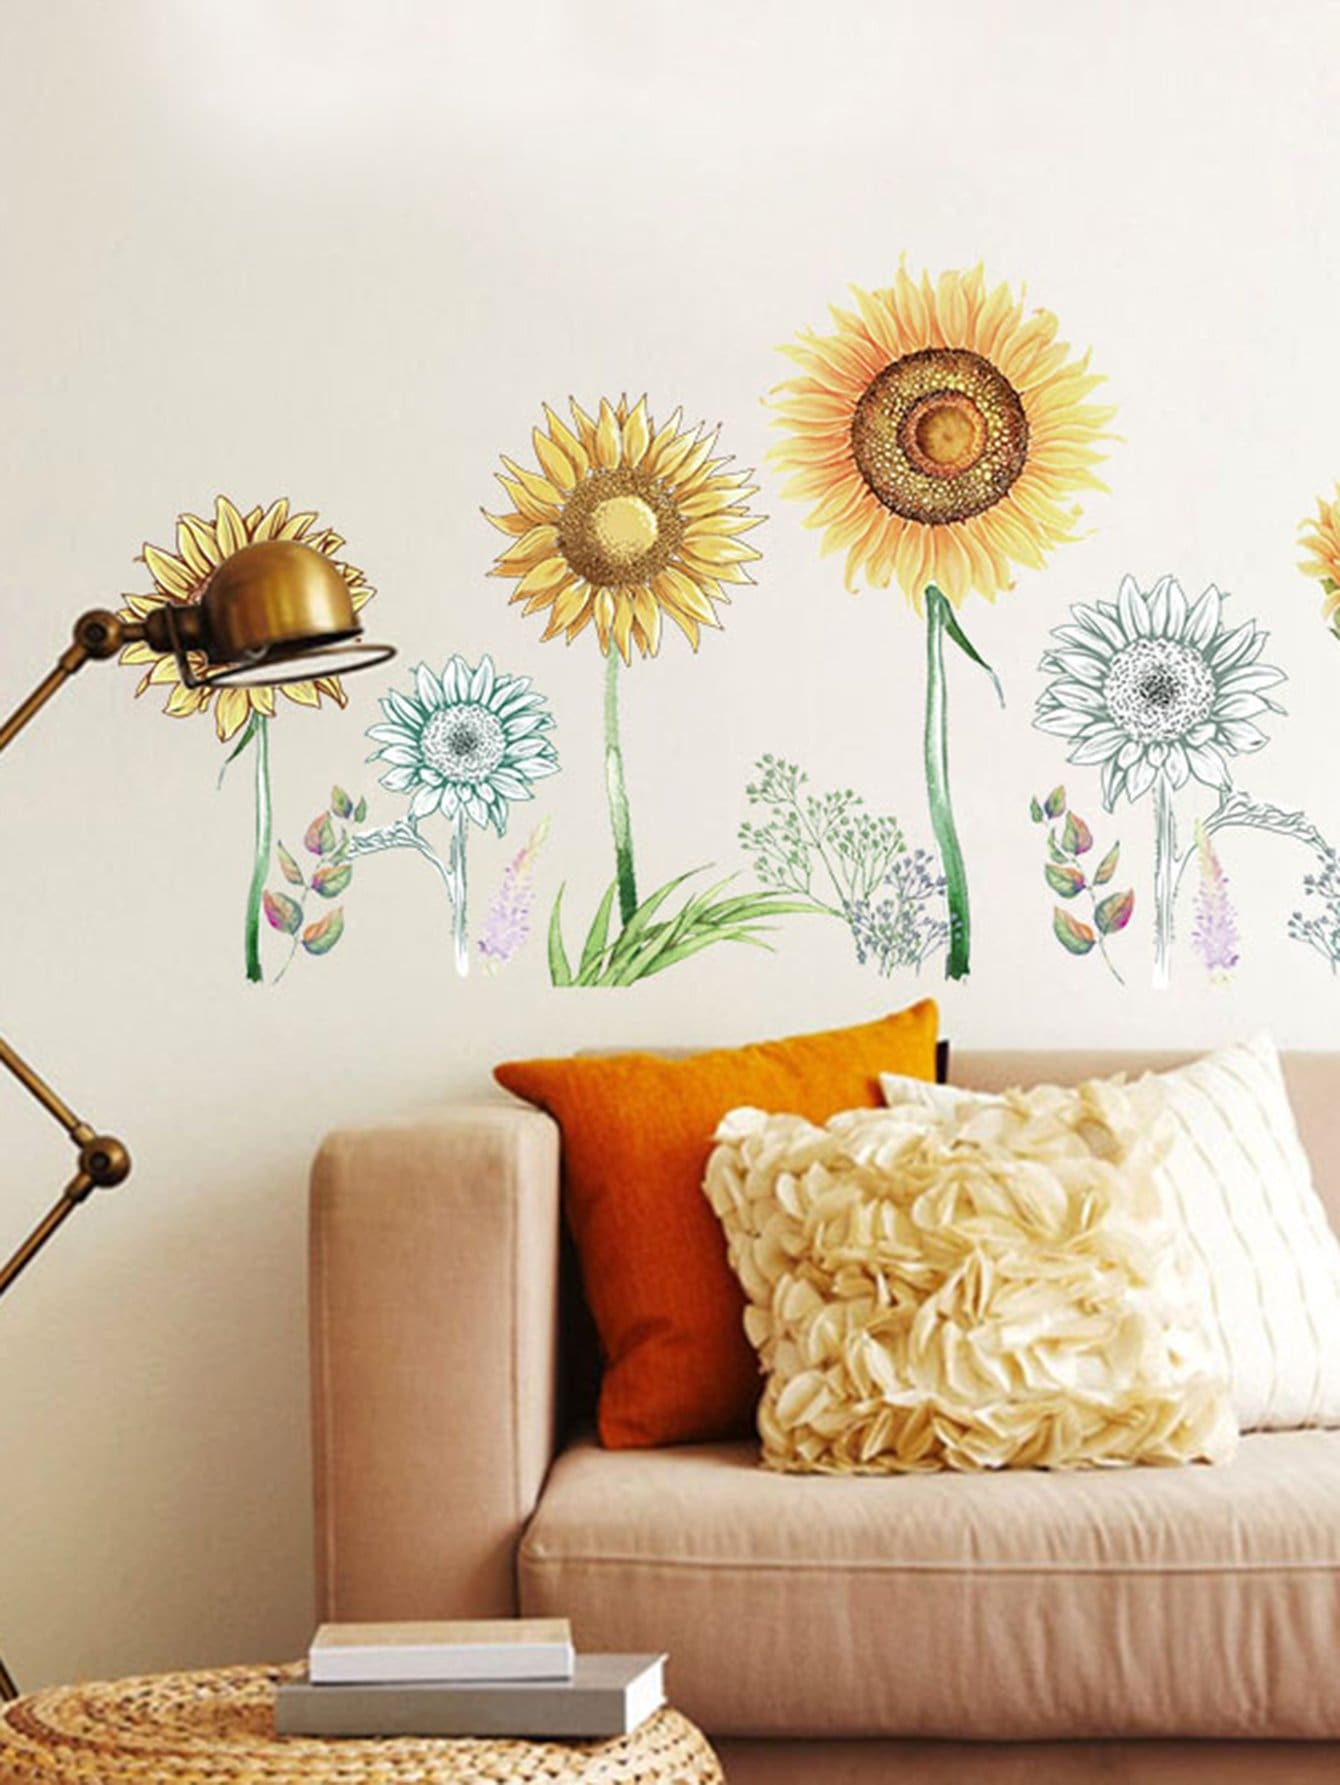 Sunflower Wall Art lawrence m the wheel of osheim book three of the red queen s war